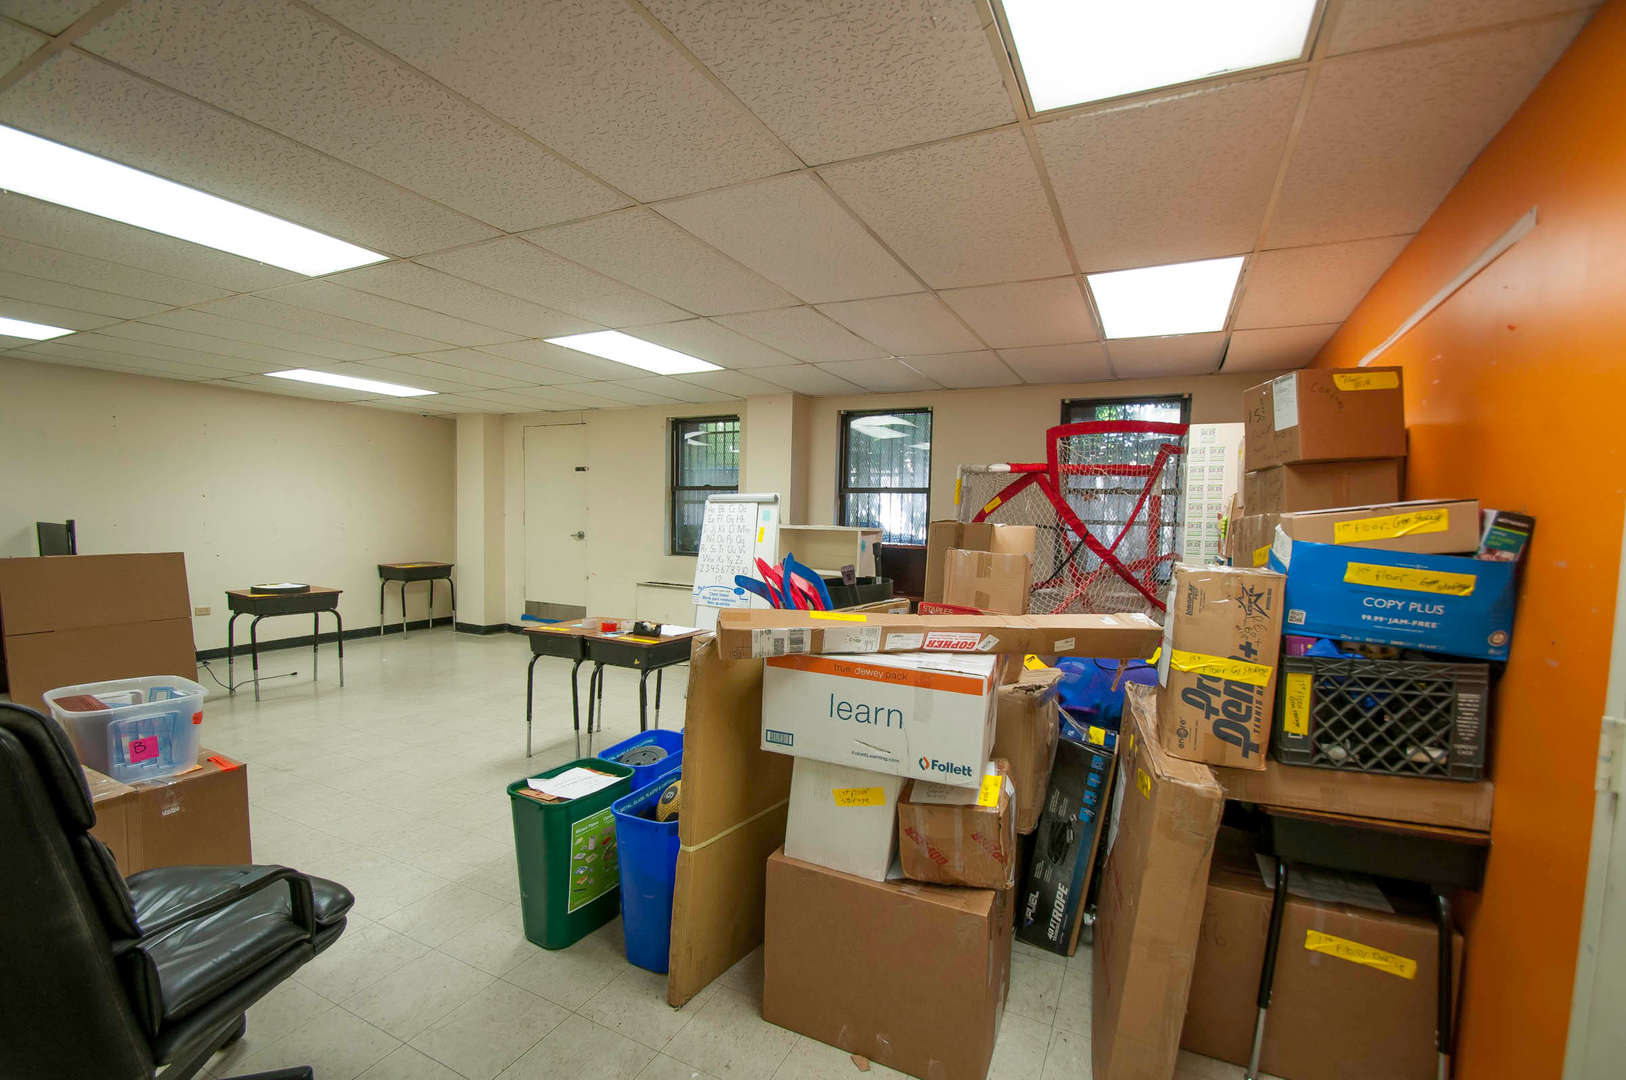 Interior Science Room with Boxes Packed